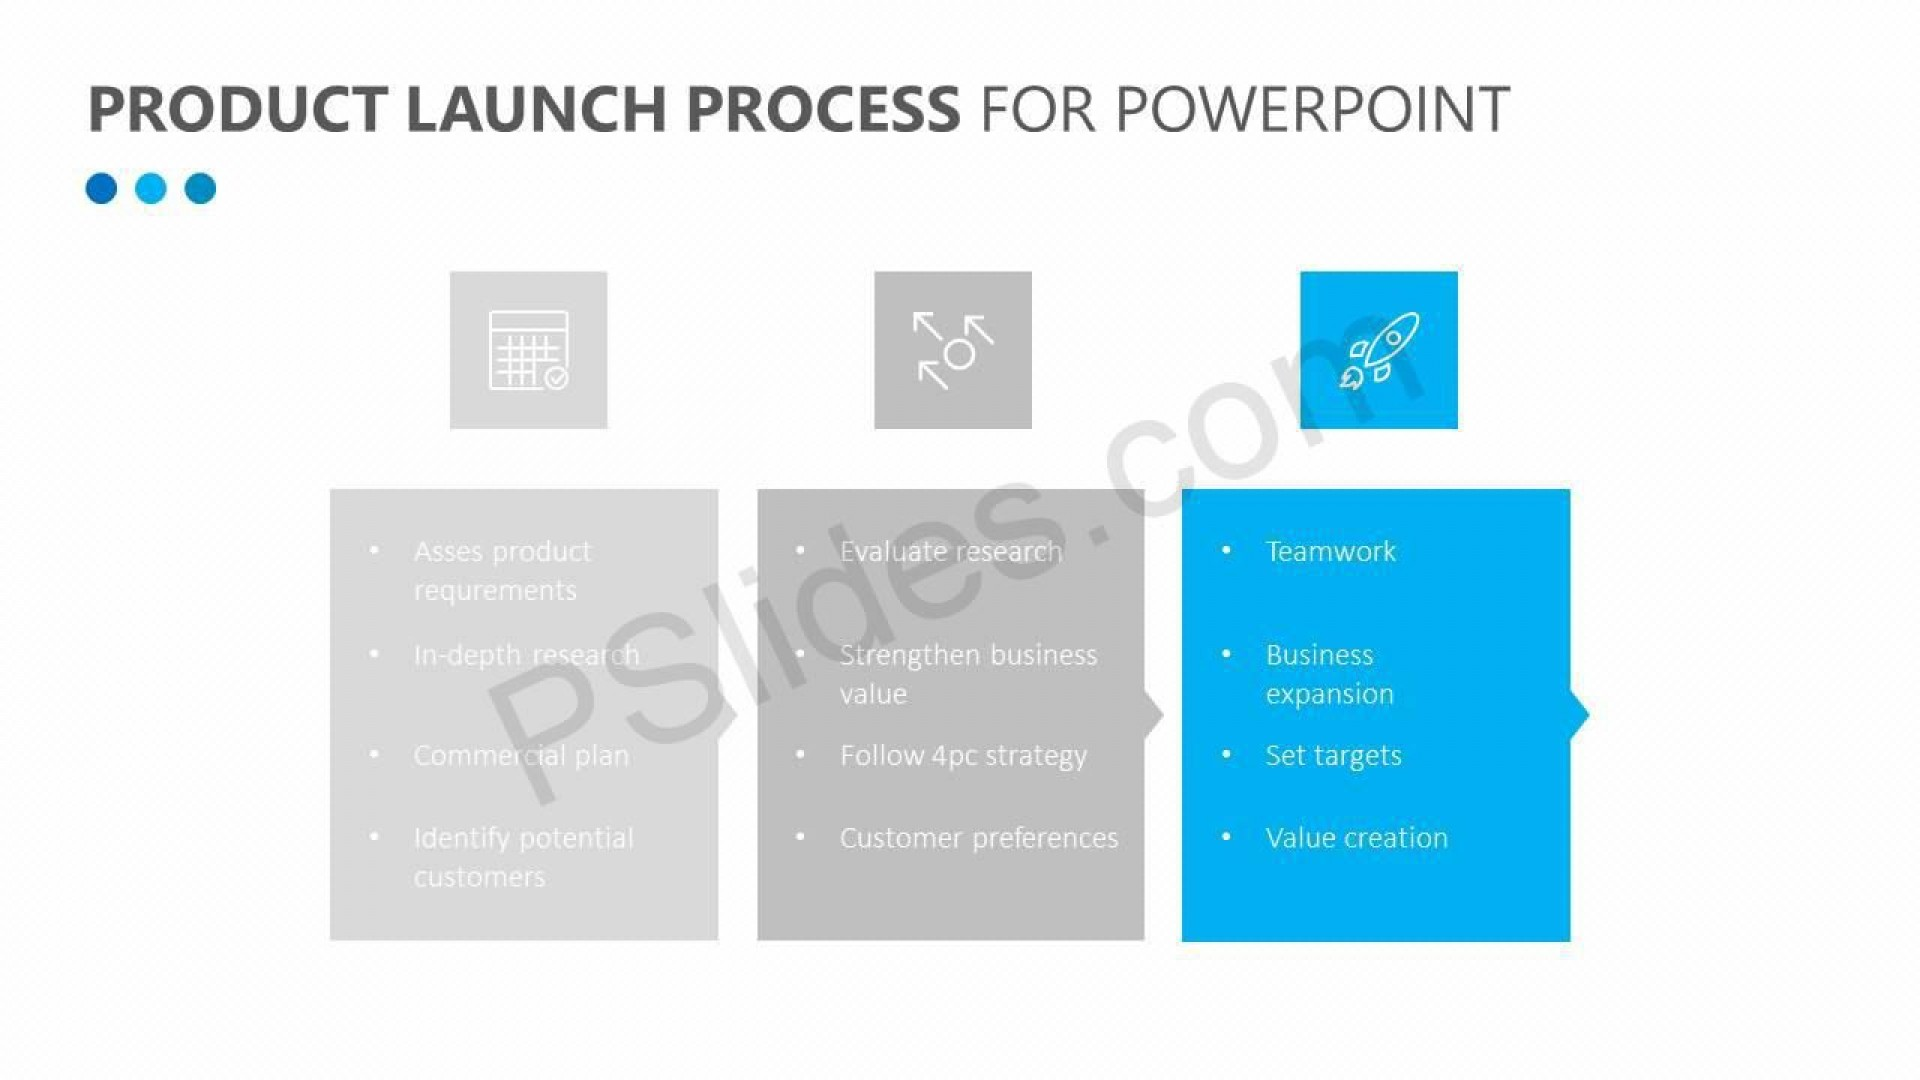 008 Staggering Product Launch Plan Powerpoint Template Free Example 1920